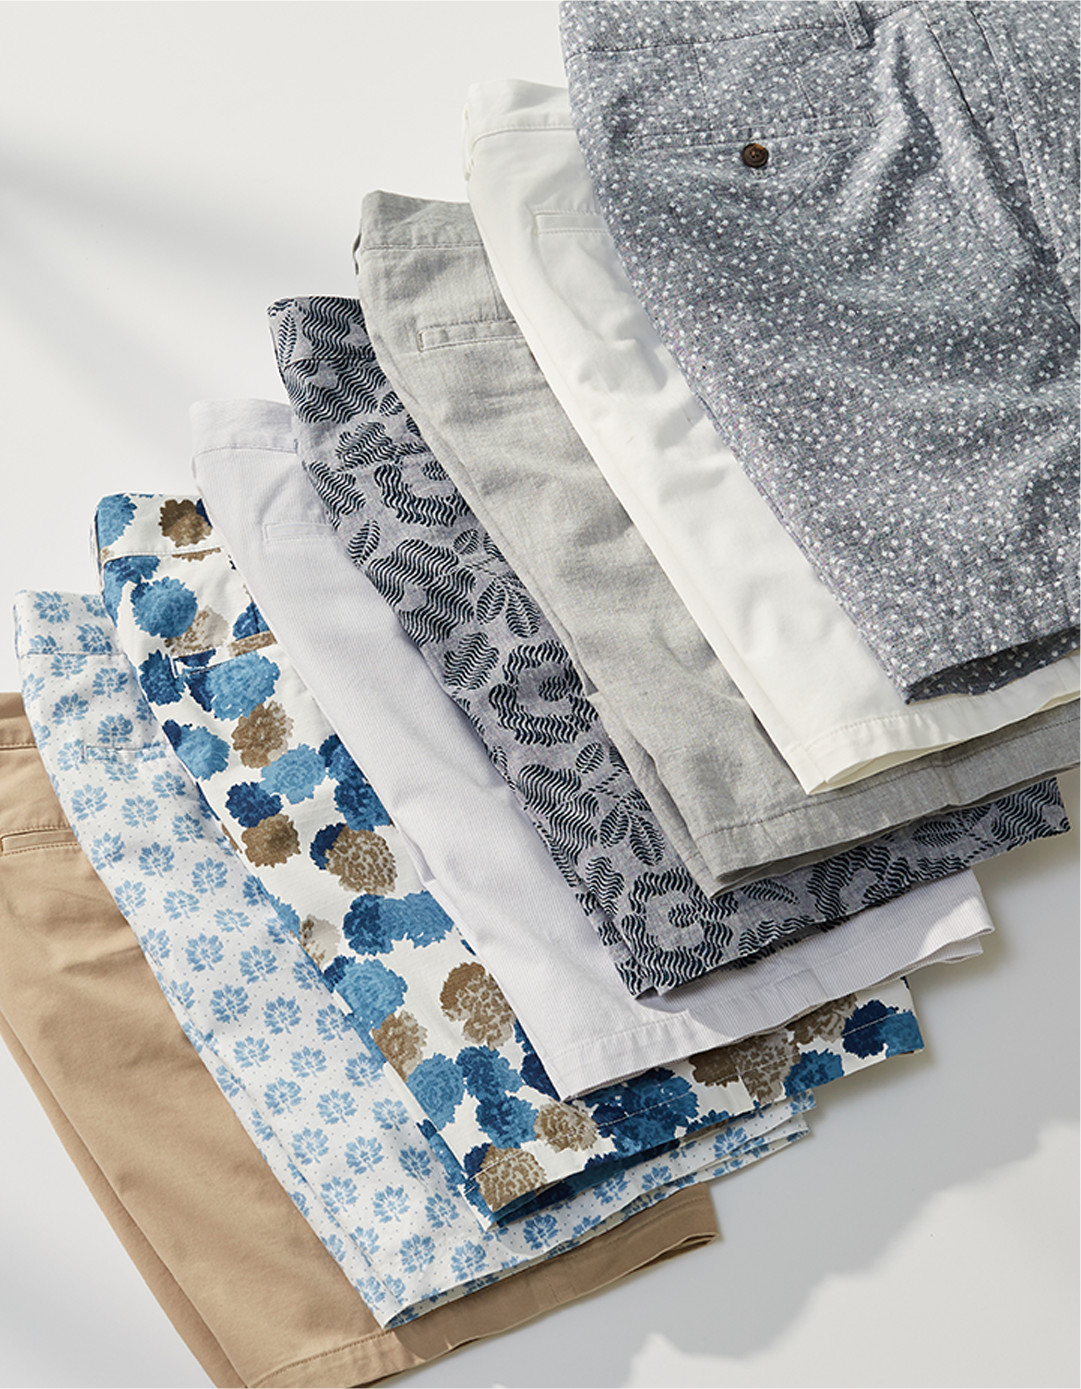 A stack of patterned shorts.